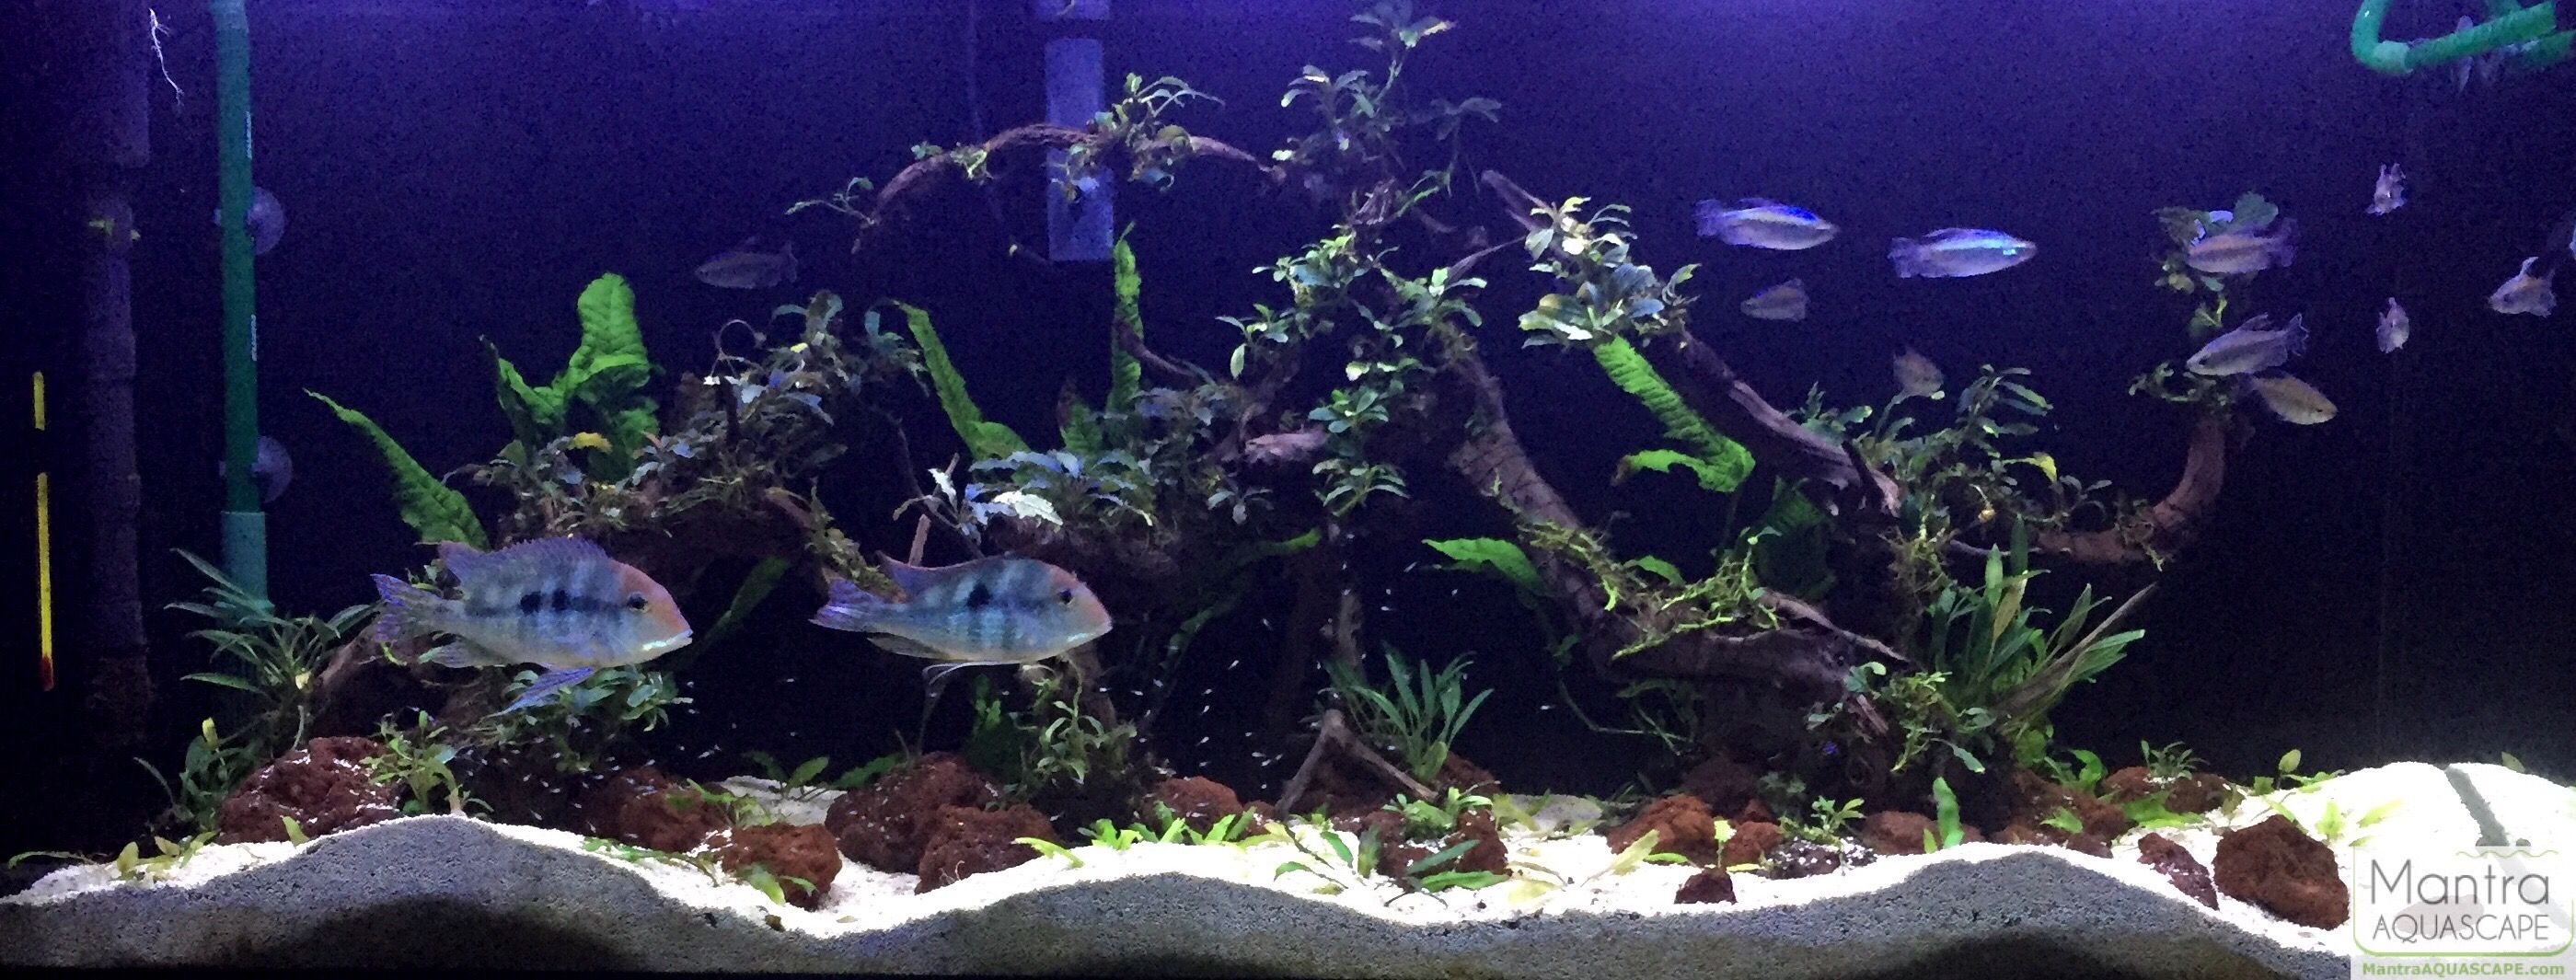 cichlid forum geophagus rht and congo tetra planted tank planted